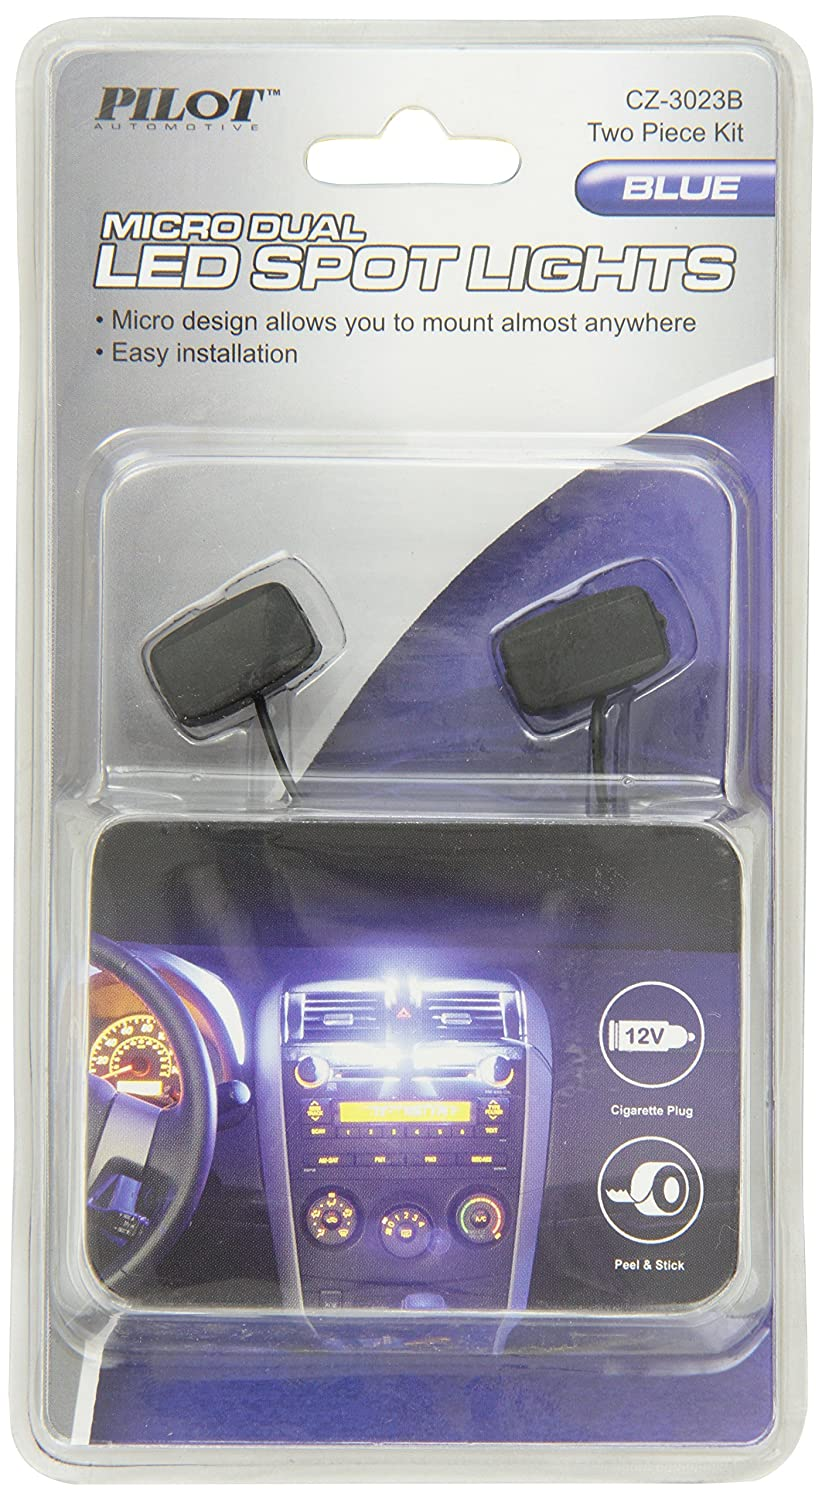 Pilot CZ3023B Dual LED Accent Light - 2 Piece